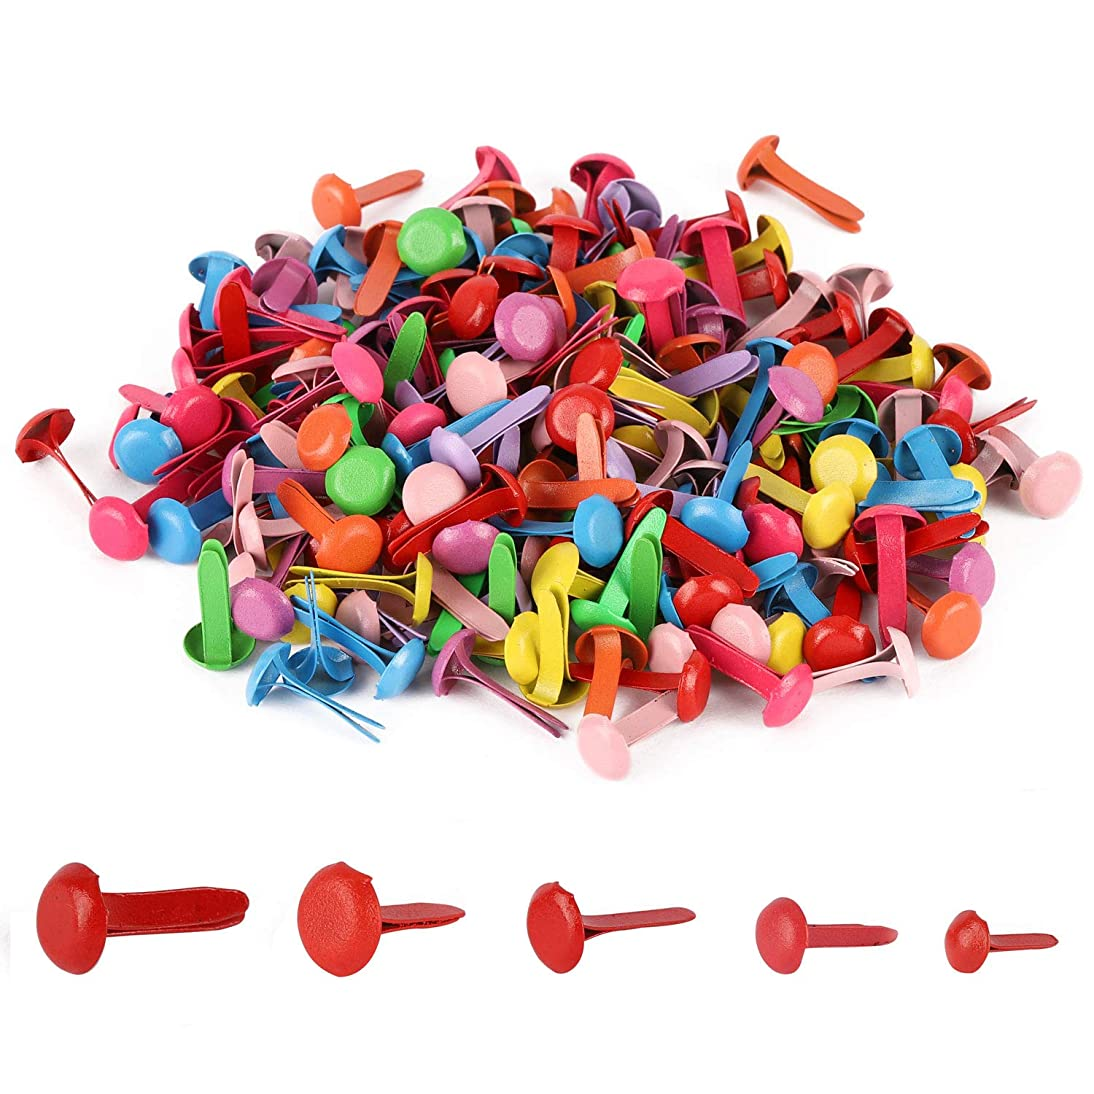 1000 Scrapbooking Brads Colorful Paper Fasteners Round Metal Brad for Crafts Making DIY 5 Size Random Color